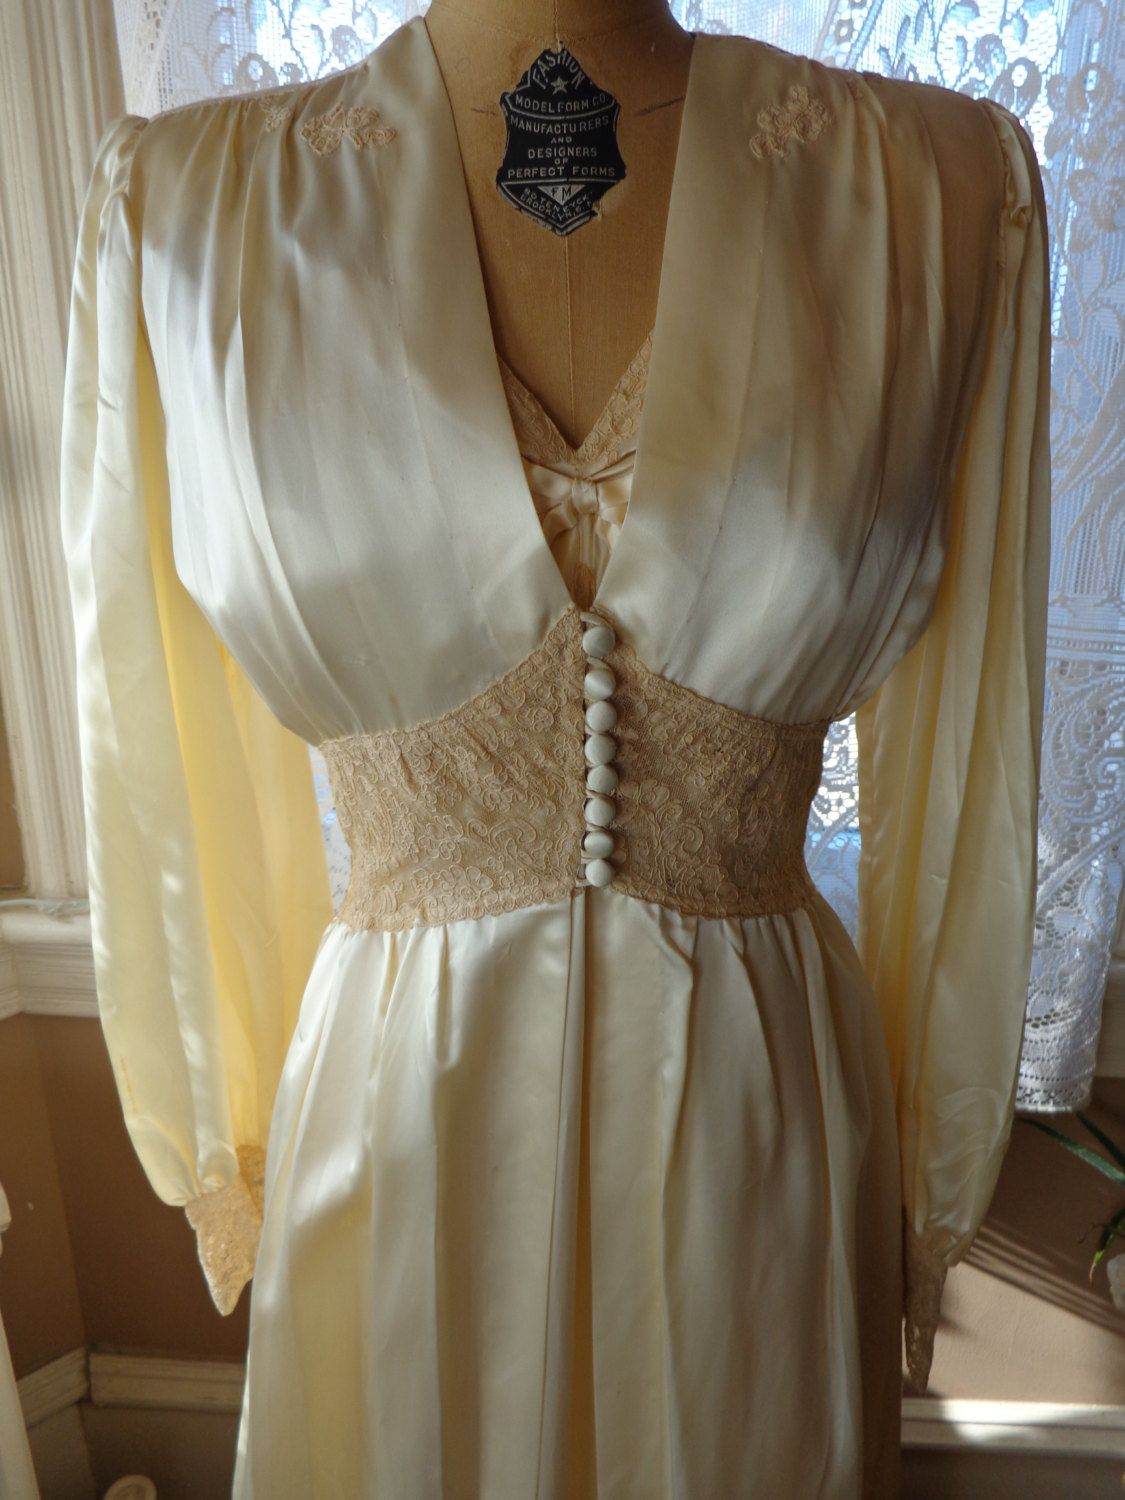 Pin On Peignoir Nightgown Negligee Nightdress Bedgown Nightrobe